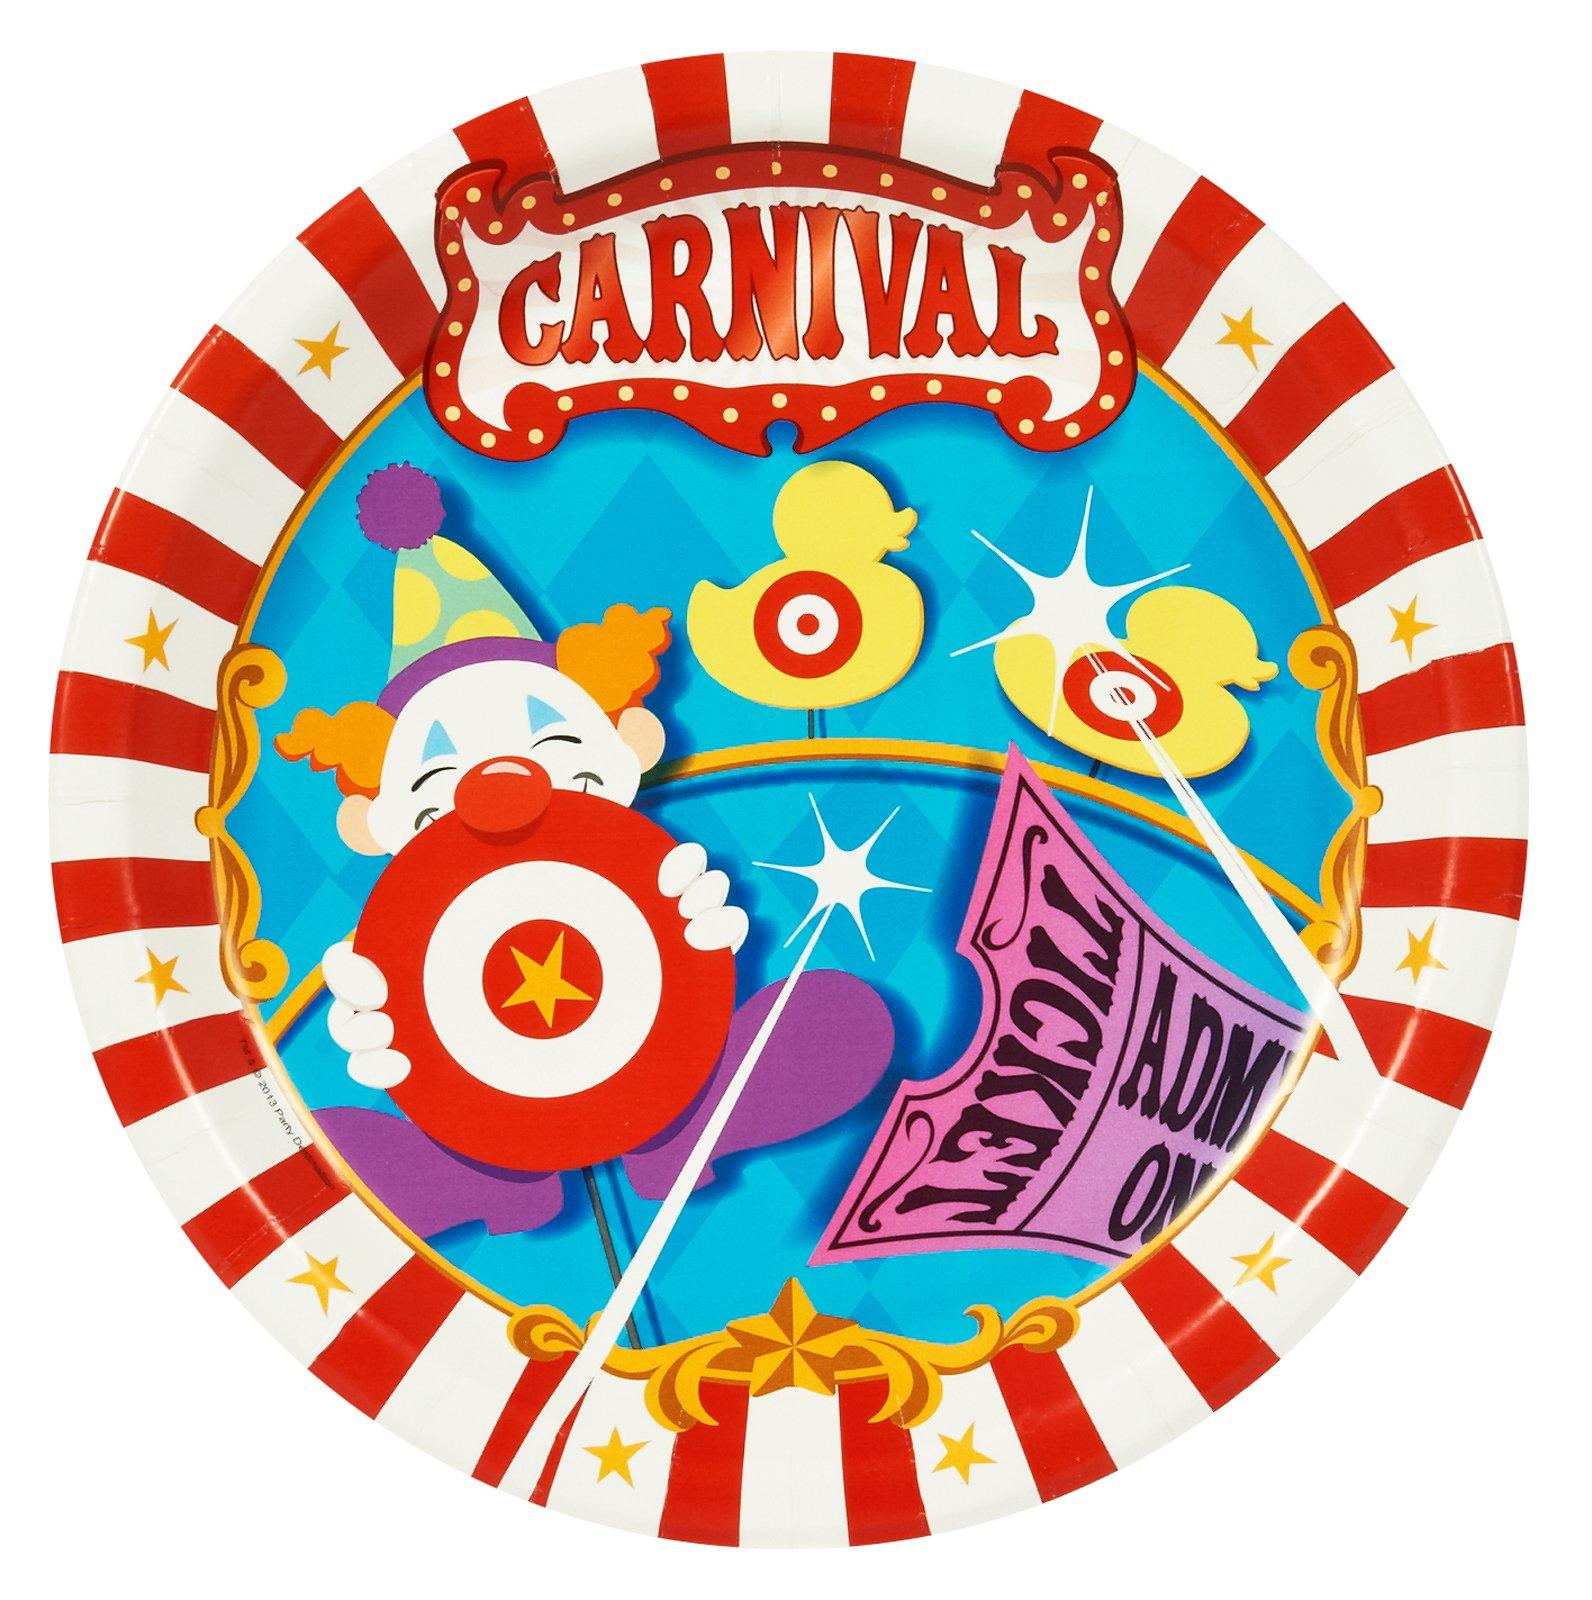 Carnival Ticket and Logo 300.33 Kb